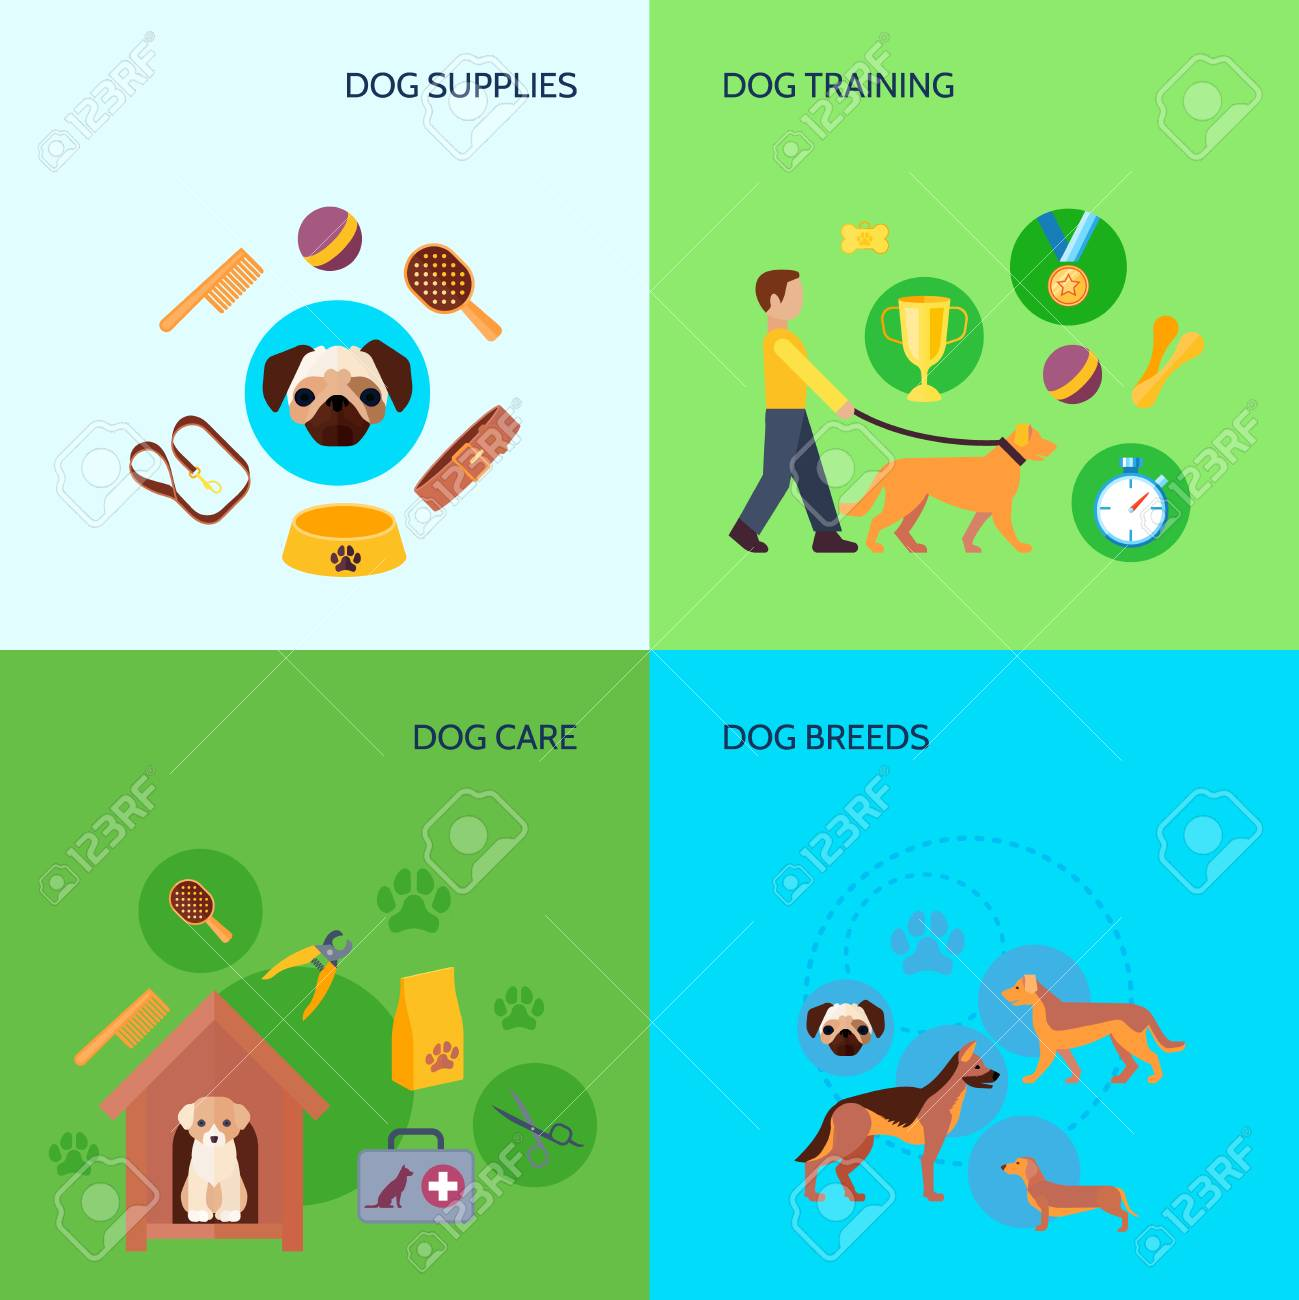 7305061e396 Dog breeds training and care products supplies 4 flat icons square  composition banner abstract isolated vector